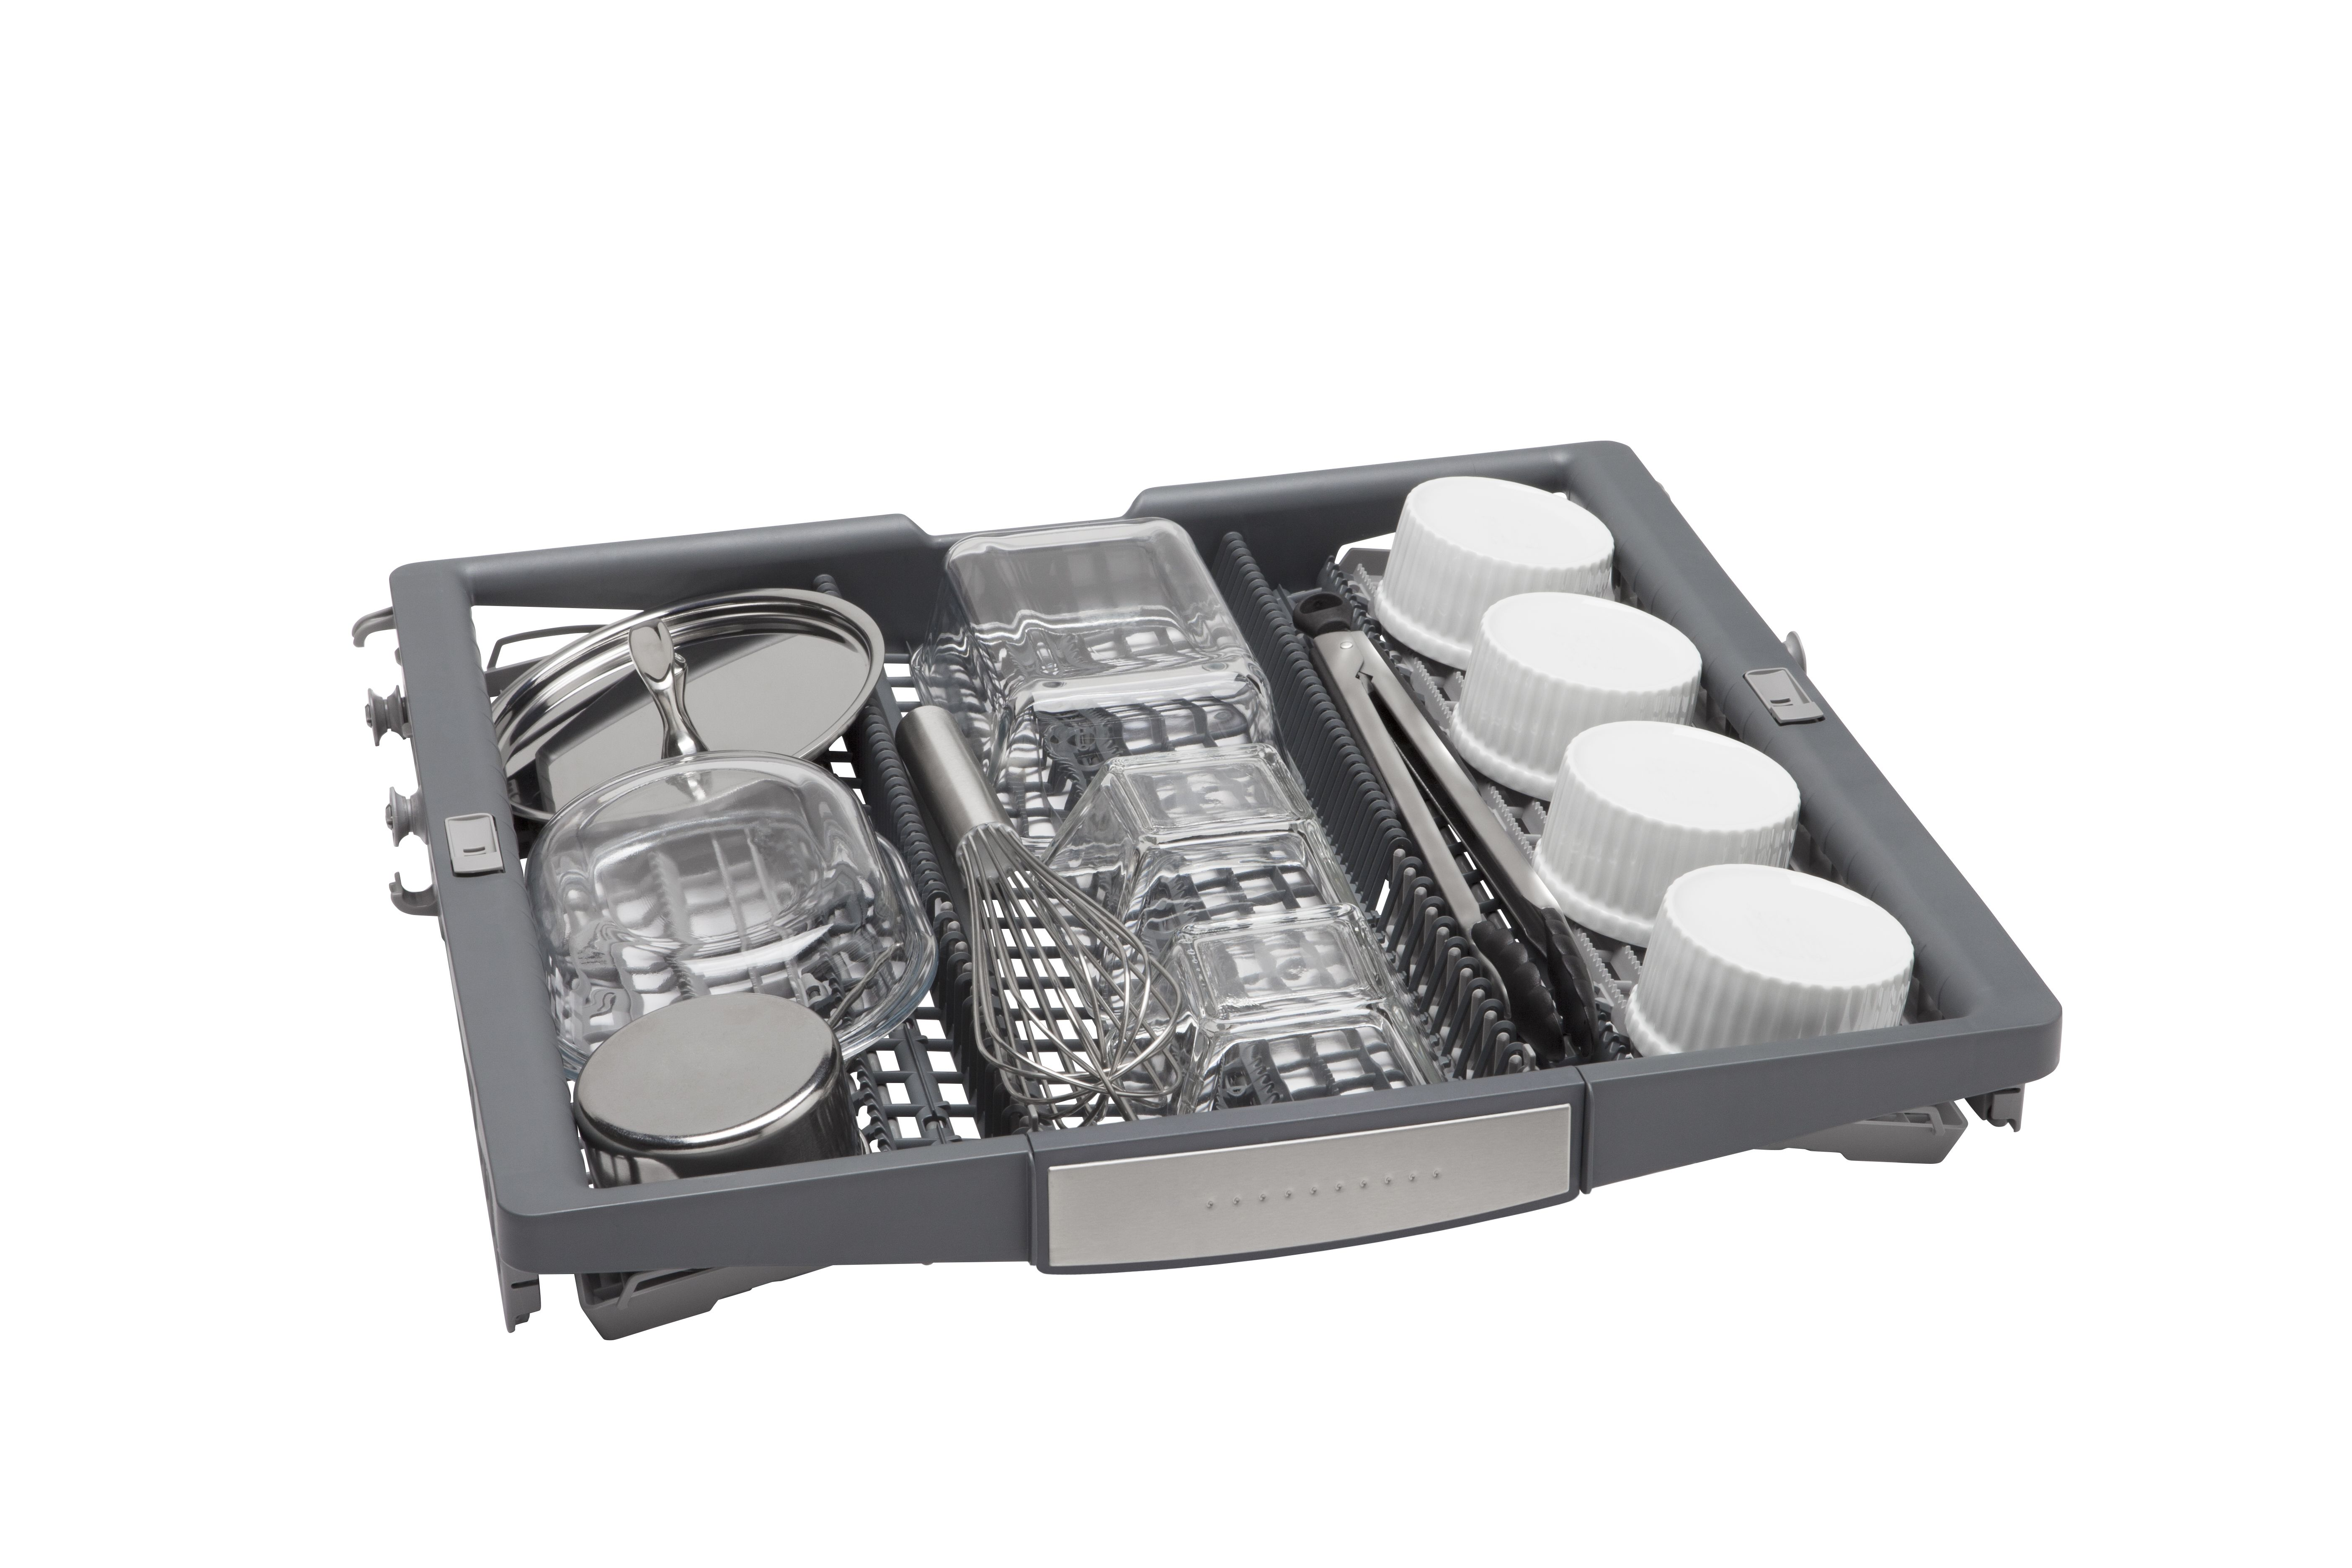 Dishwashers With Images Dishwasher Cooking Utensils Quiet